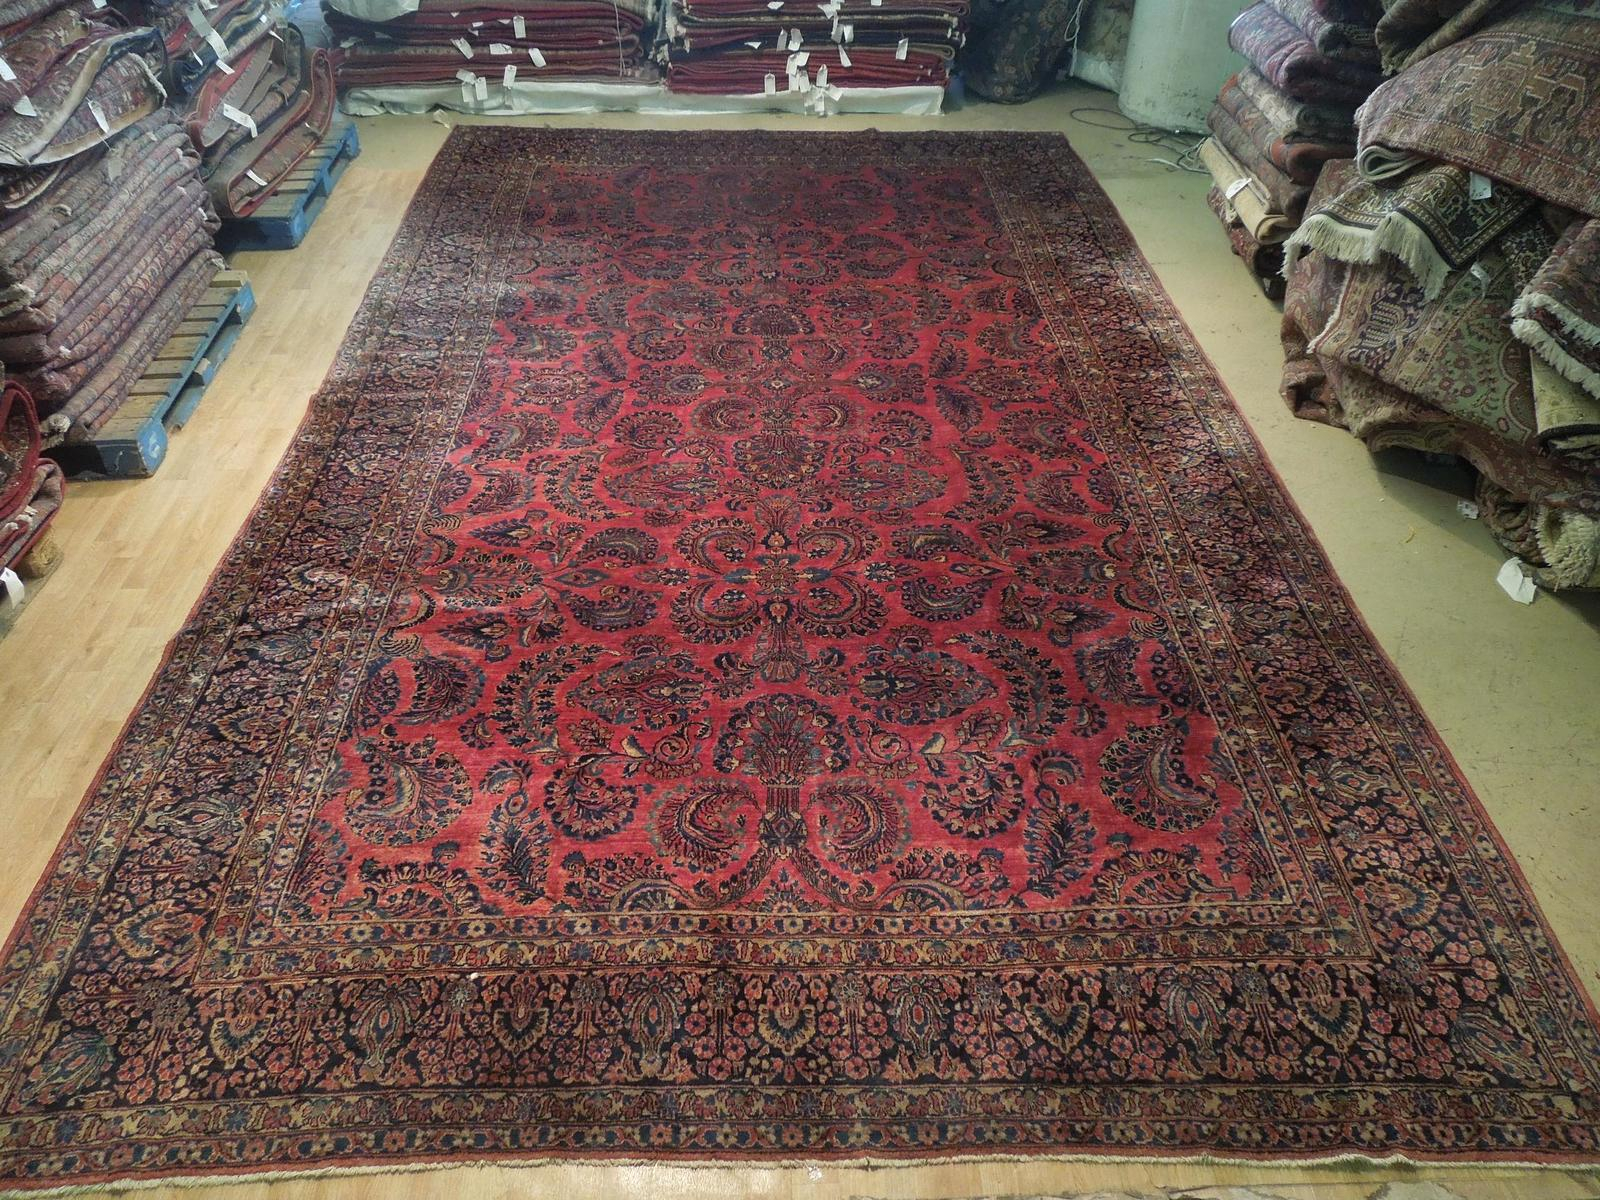 Red Sarouk Persian Wool Handmade Rug 11' x 18' Vivid Red Detailed Original Rug image 4